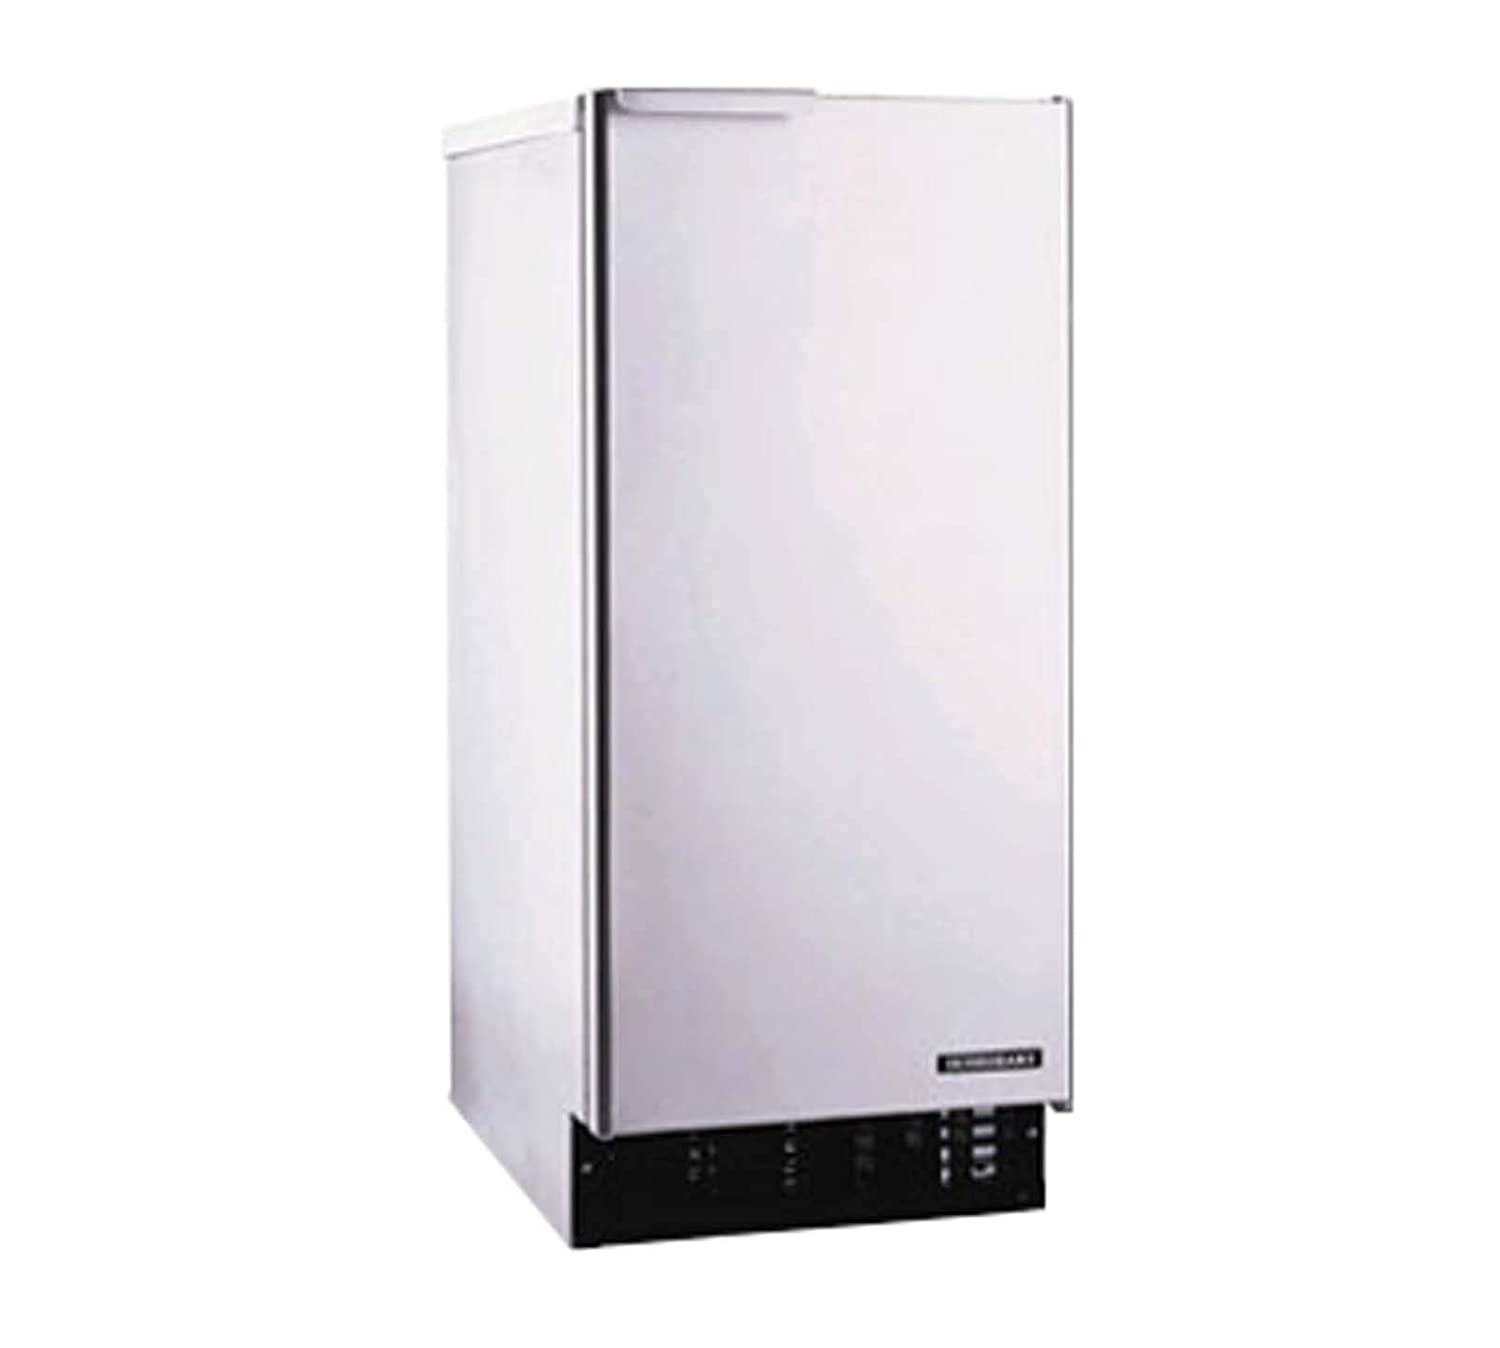 Hoshizaki AM-50BAJ 15' UL Listed Built-In Self Contained Ice Maker With 55 lbs, Stainless AM-50BAE